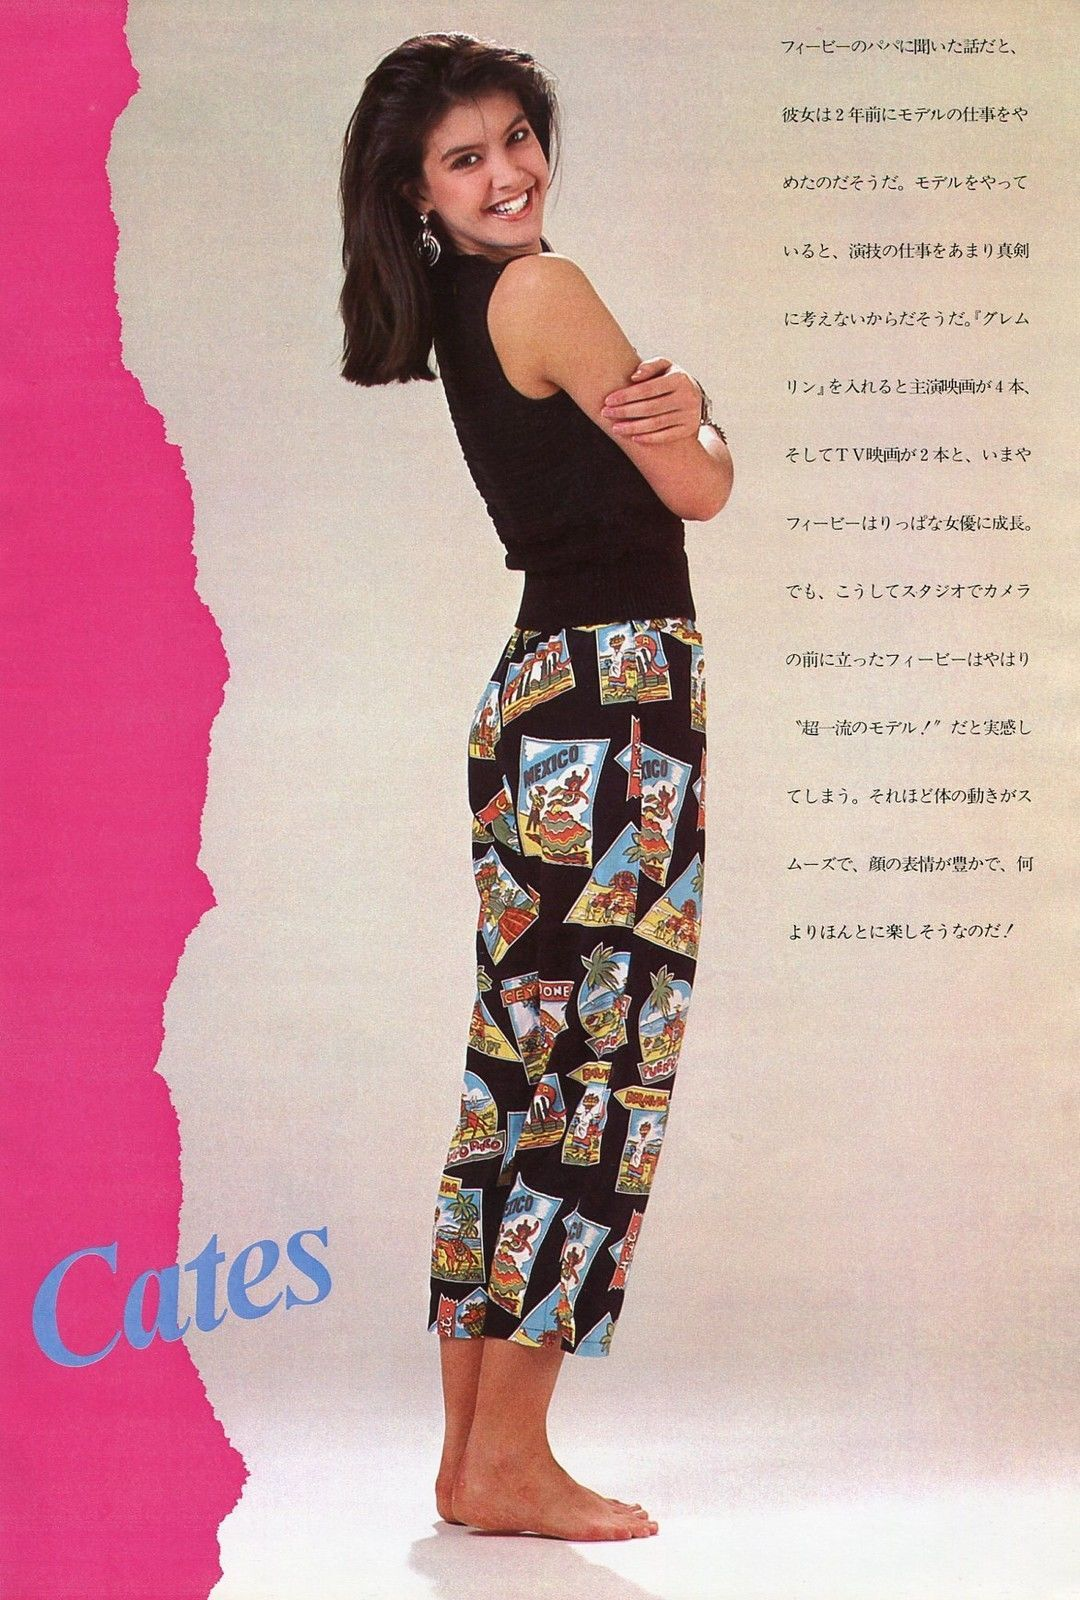 Phoebe Cates butt